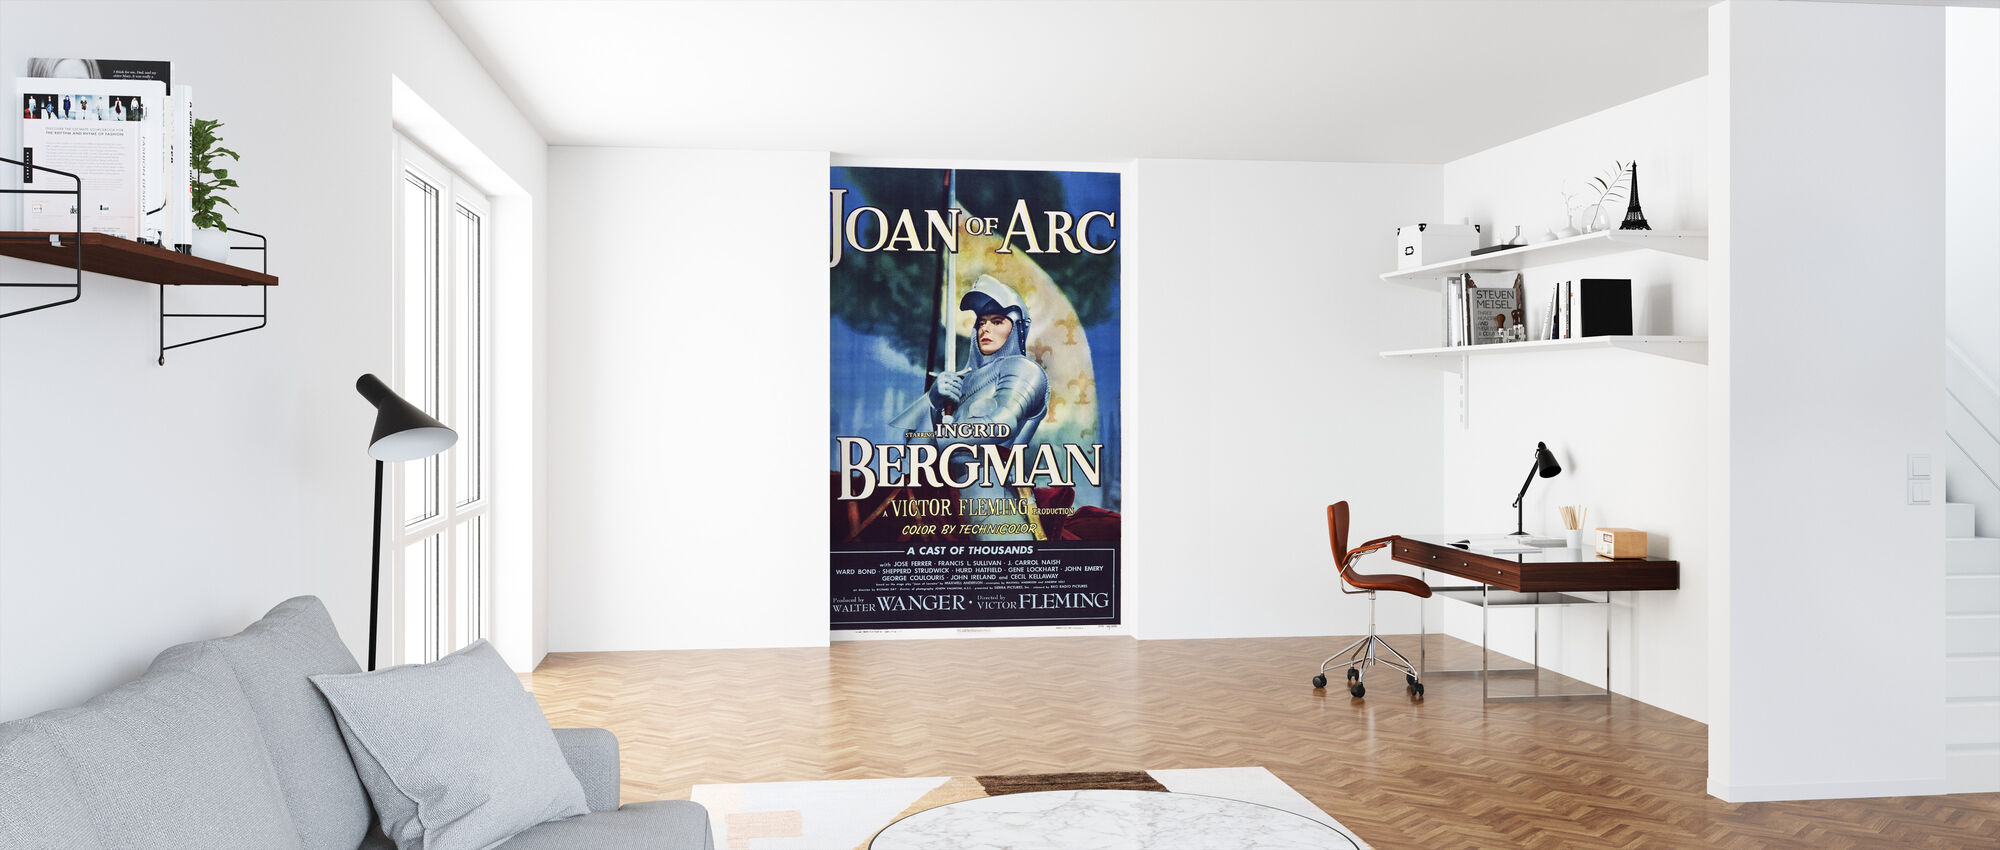 Movie Poster Joan of Arc - Wallpaper - Office